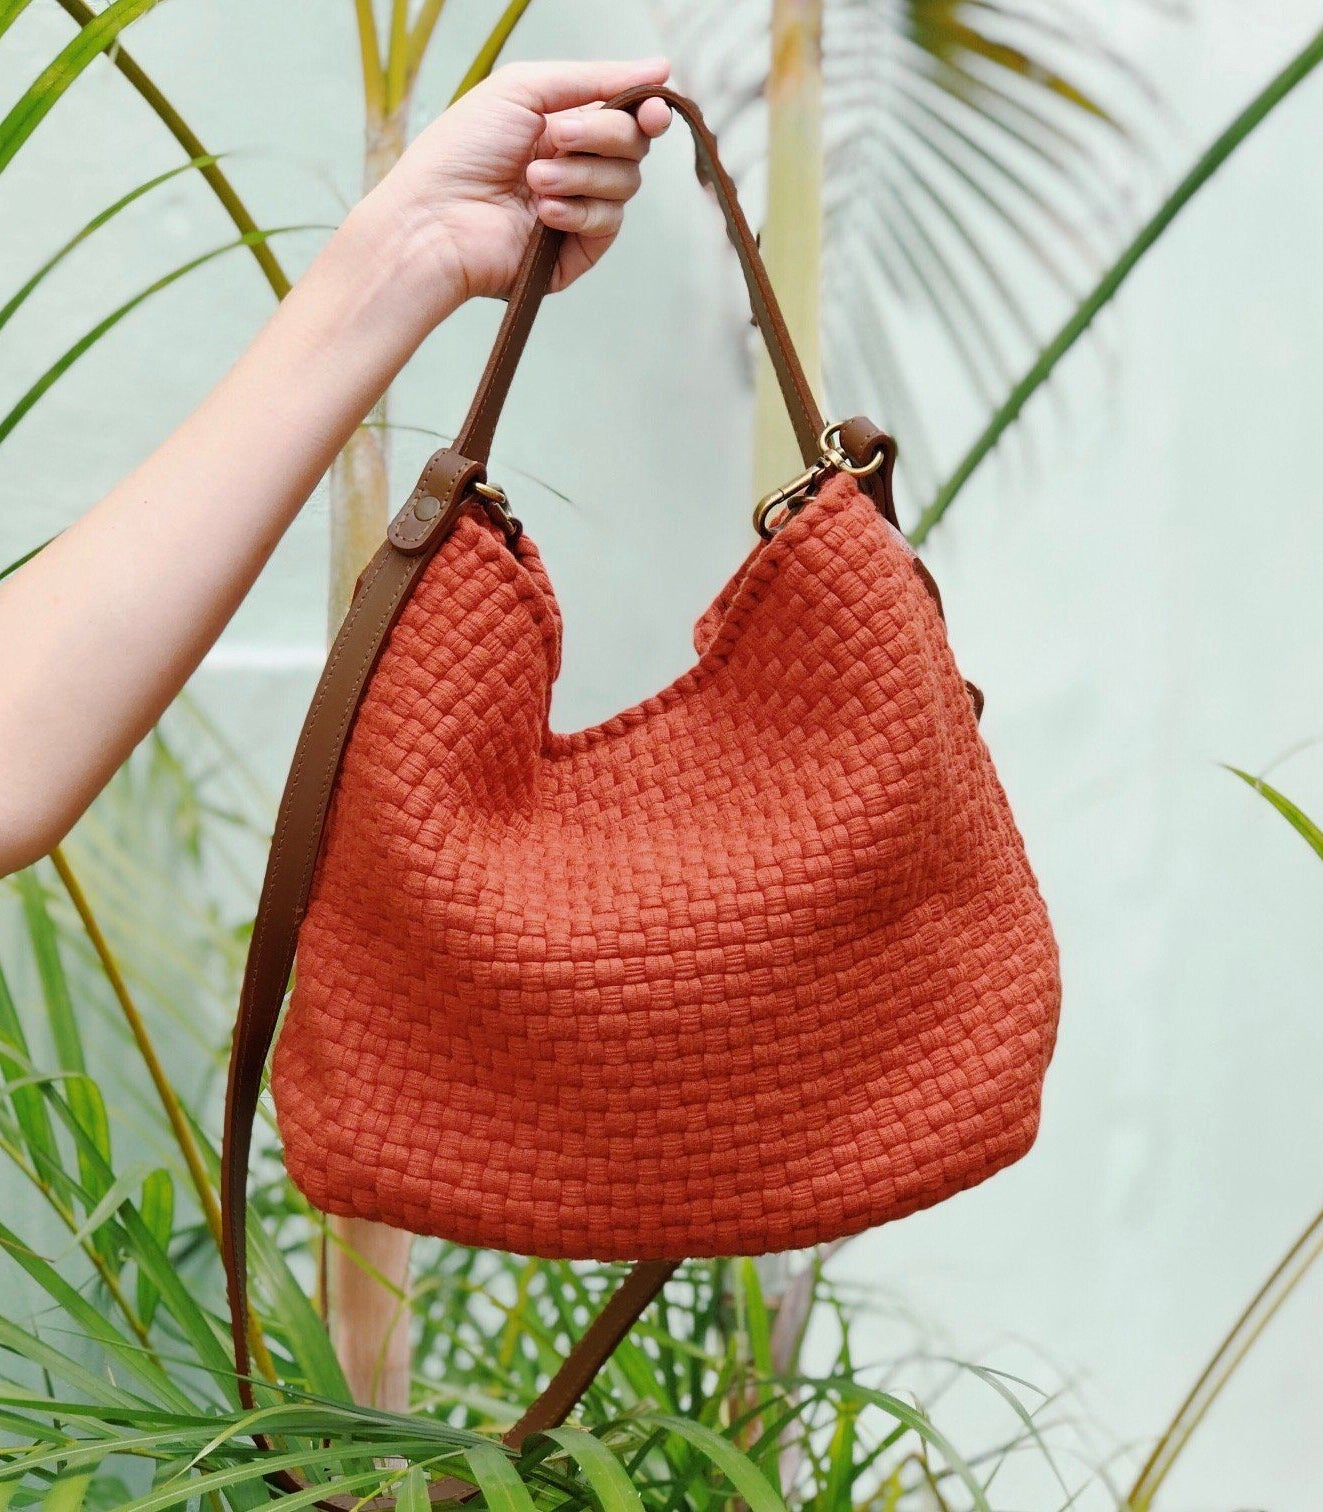 Rags2Riches Buslo Mini in Burnt Orange